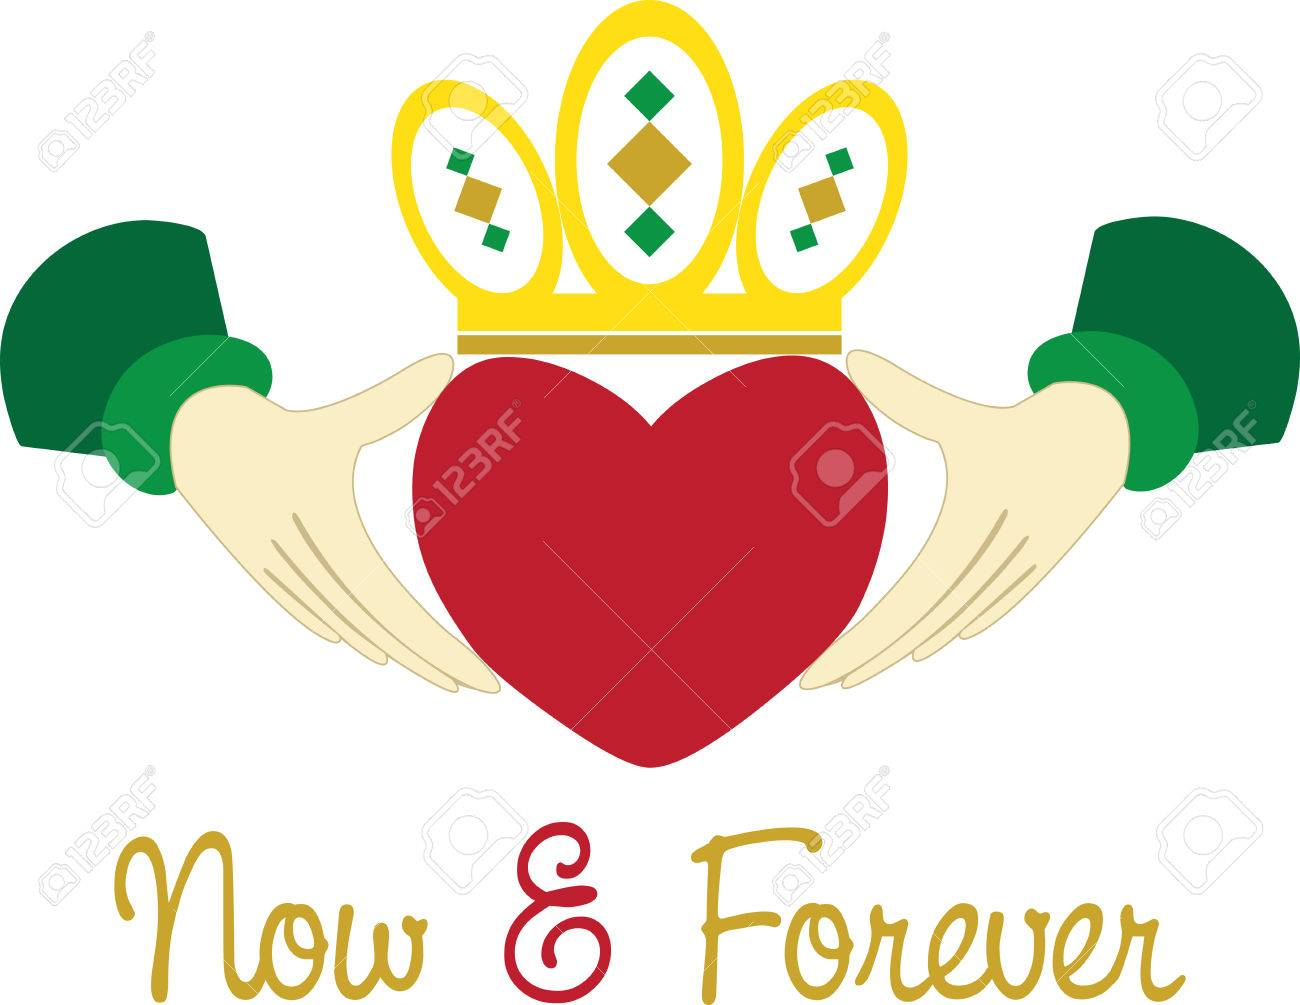 The Claddagh ring is a traditional Irish ring given which represents...